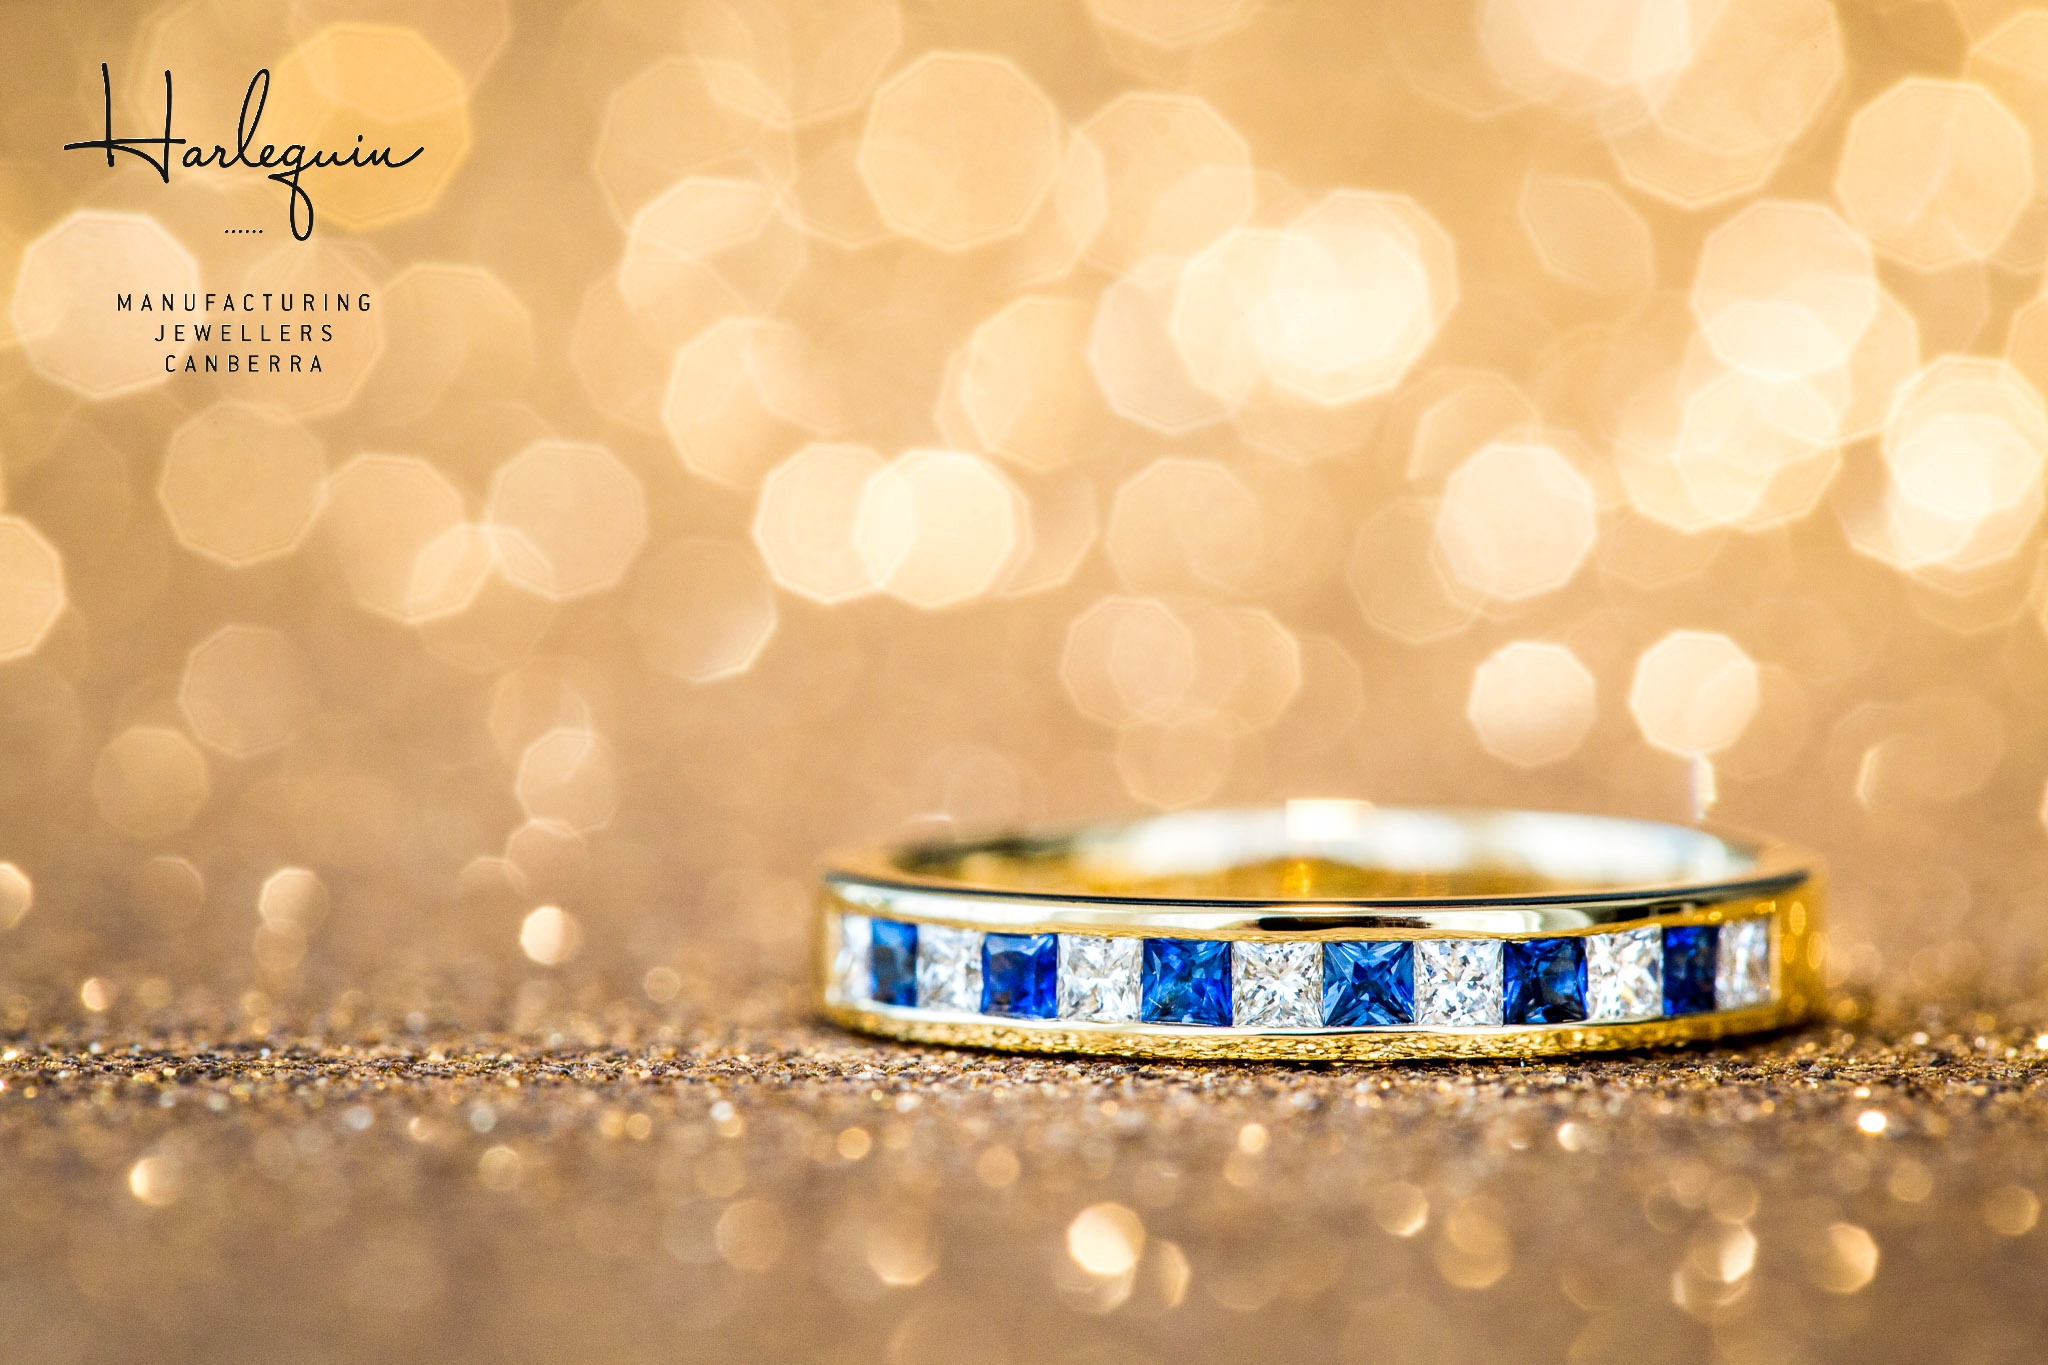 Blue sapphire and diamond eternity ring - Harlequin Jewellers Canberra